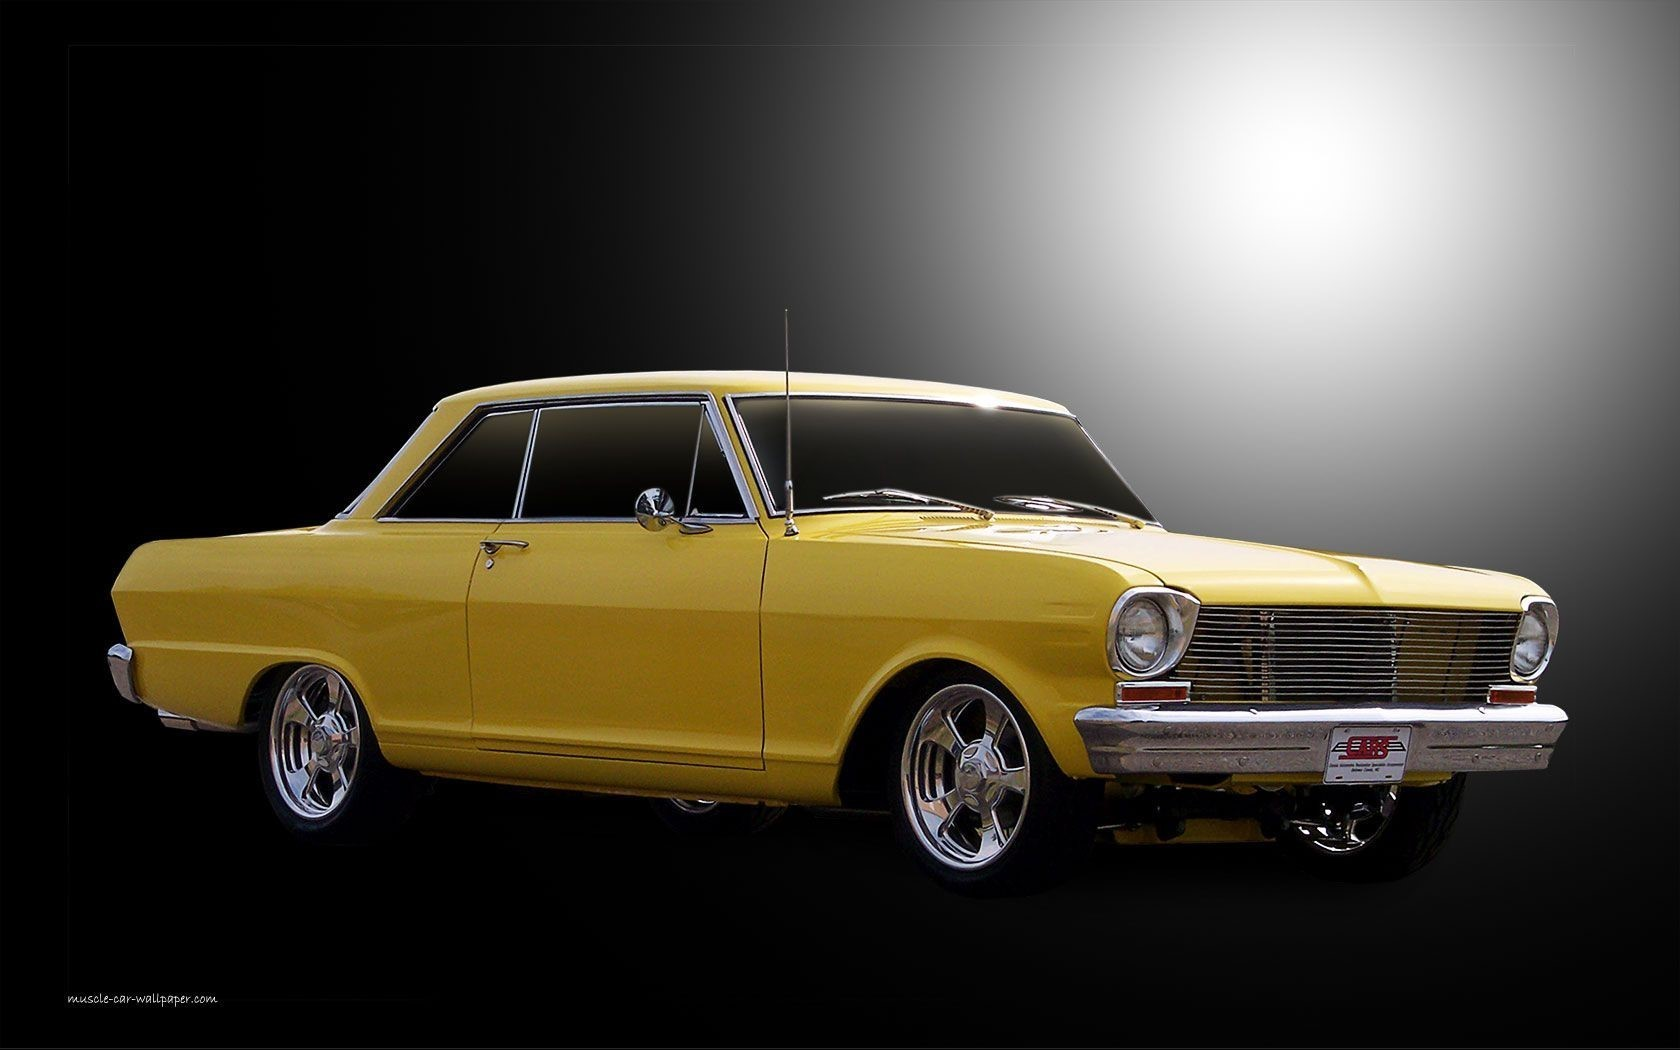 Chevy Muscle Car images